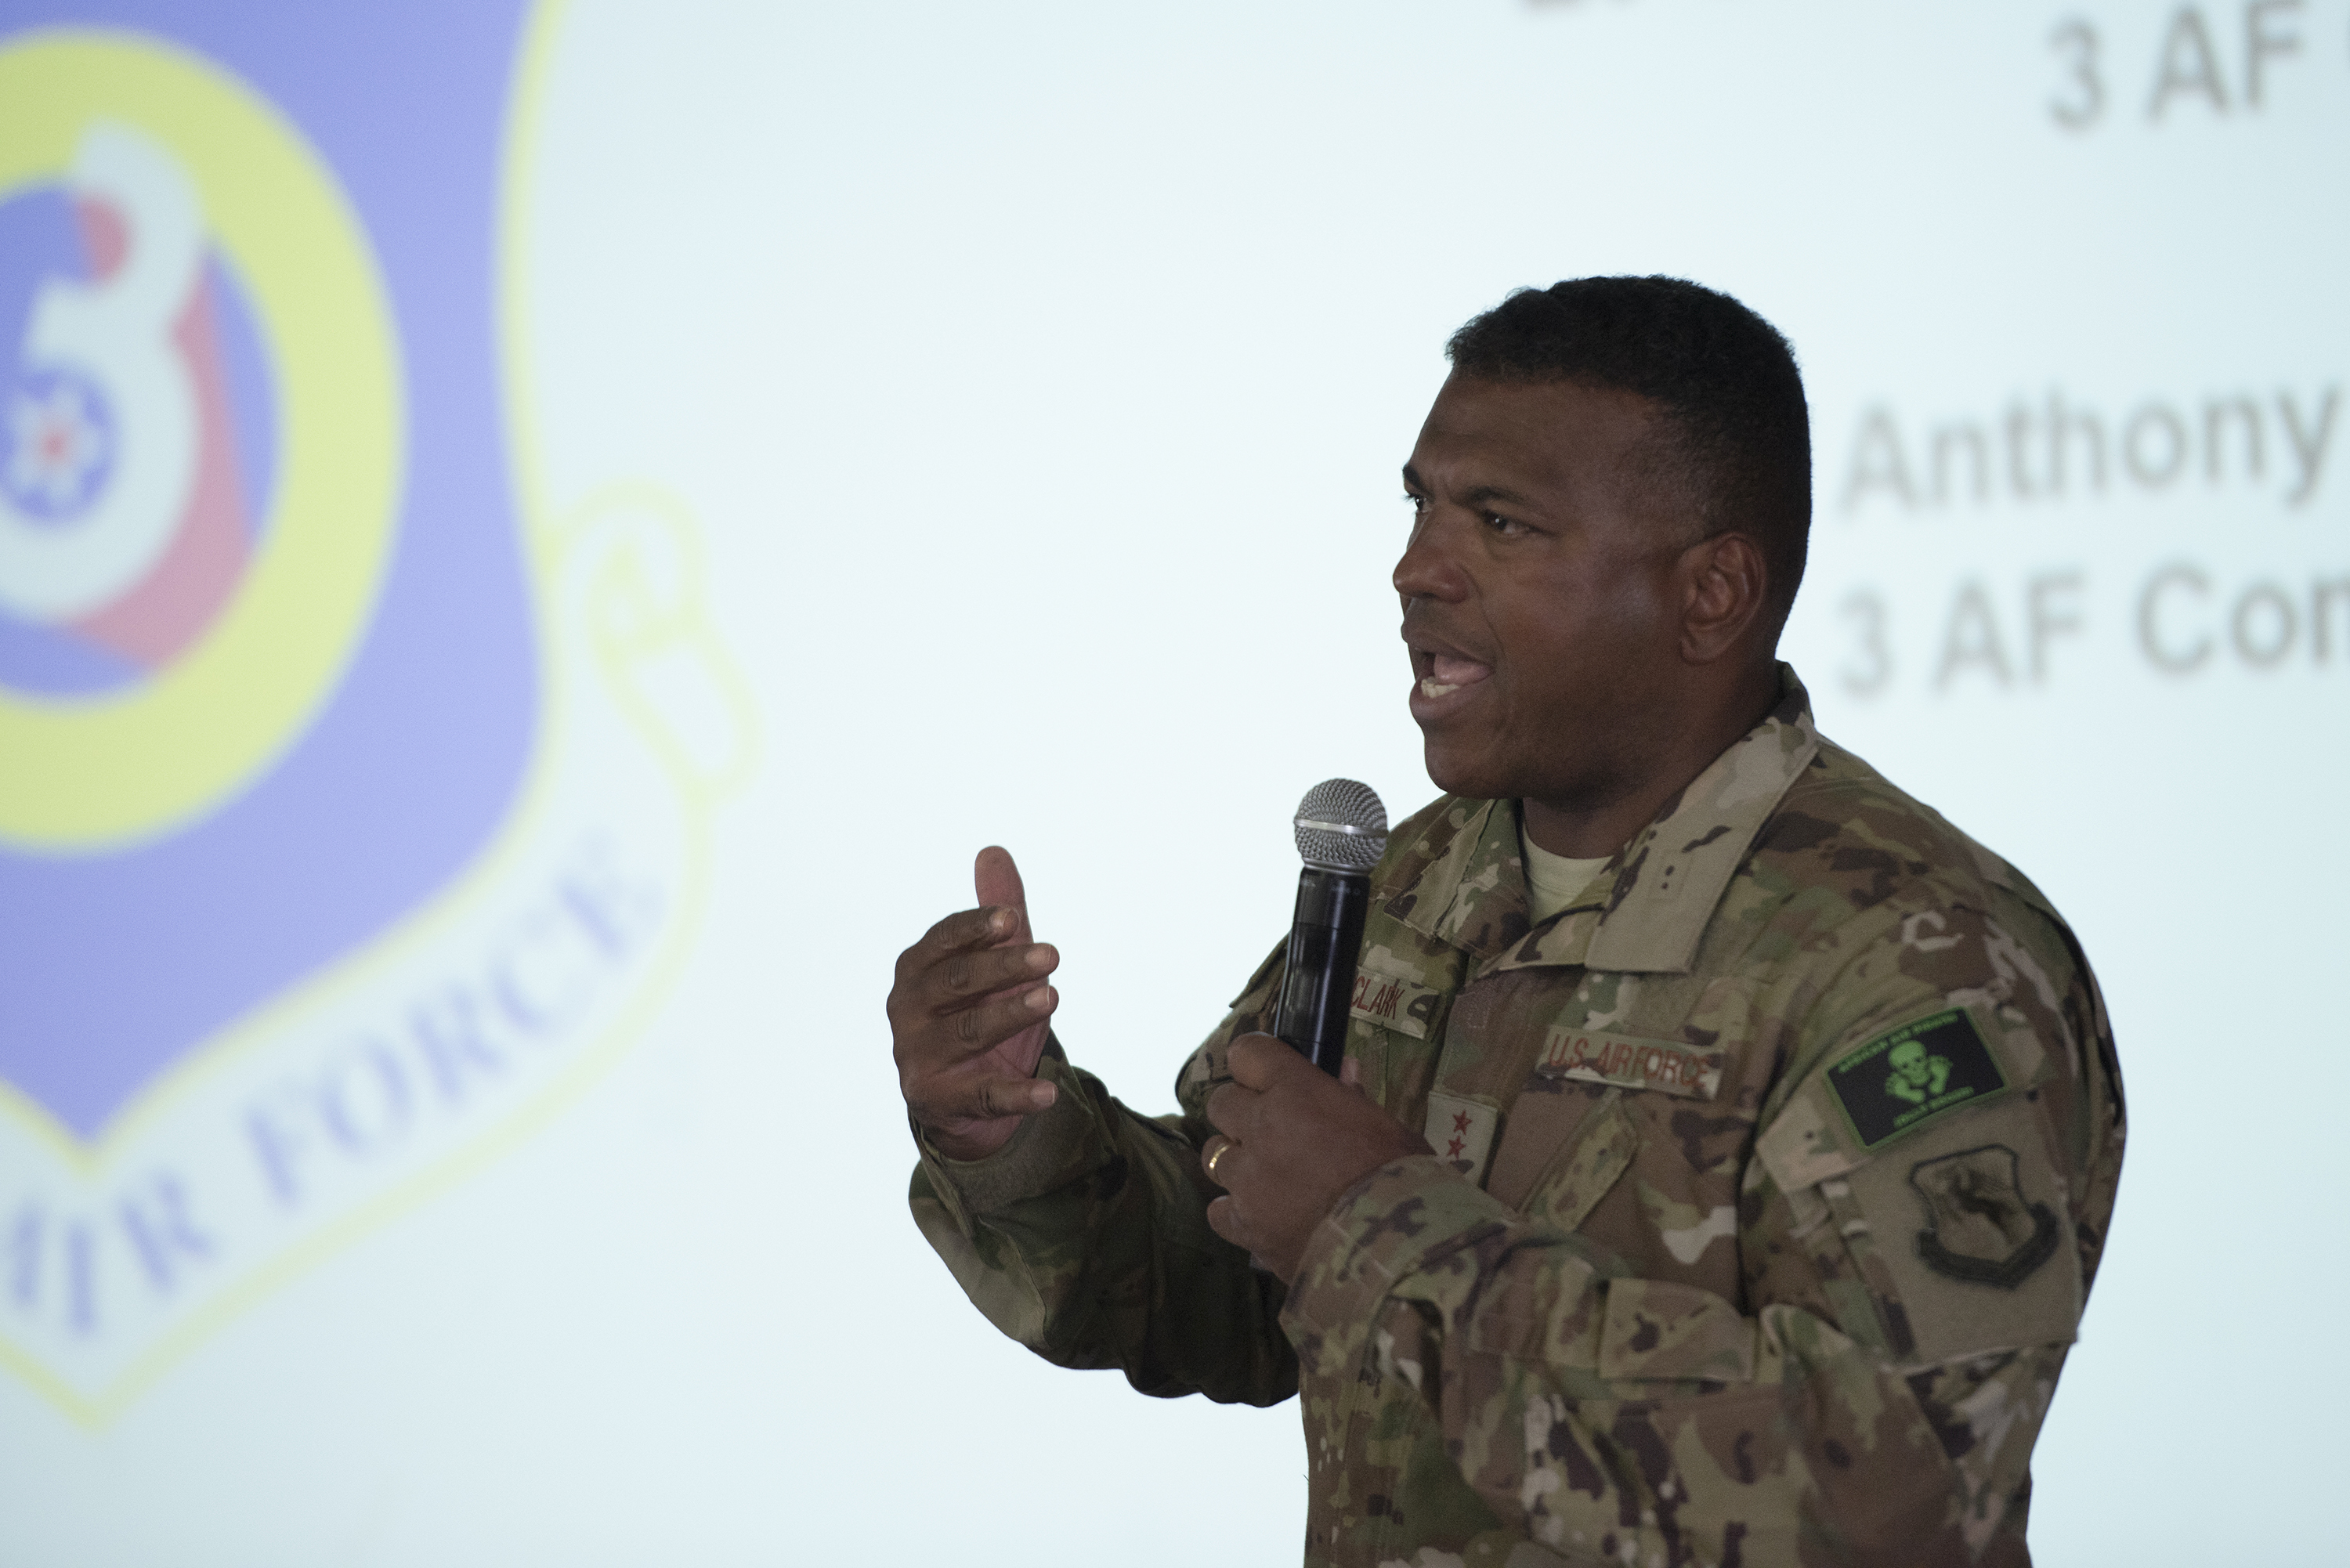 U.S. Air Force Lt. Gen. Richard Clark, commander, 3rd Air Force, speaks with Airmen from the 449th Air Expeditionary Group on Camp Lemonnier, Djibouti, Aug. 18, 2018. Clark and Chief Master Sgt. Anthony Cruz Munoz, command chief, 3rd Air Force, participated in a question-and-answer session and shared their leadership perspectives with the deployed service members. (U.S. Air National Guard photo by Master Sgt. Sarah Mattison)